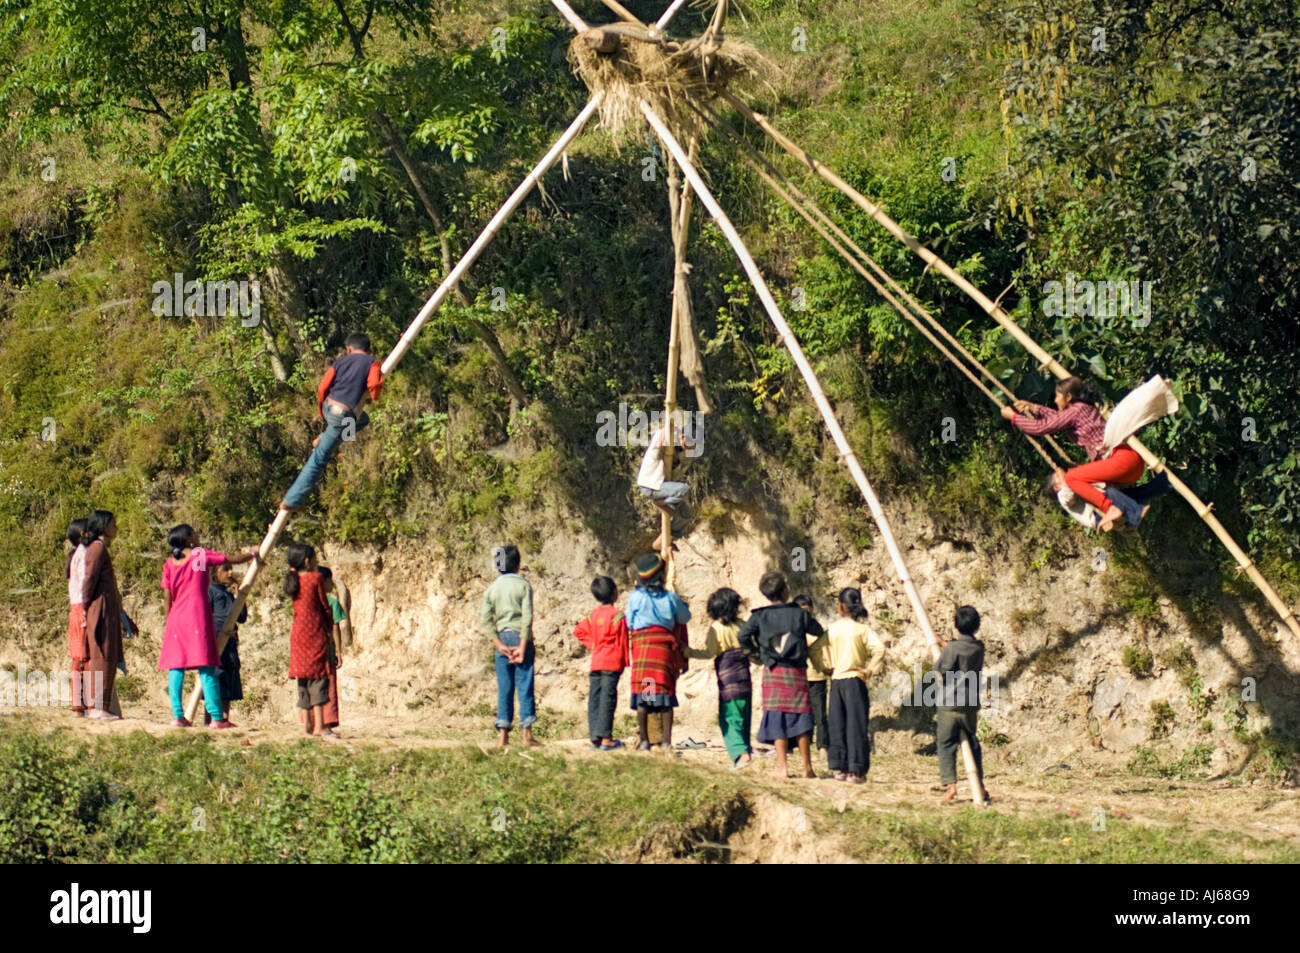 Children playing at a high swing made of bamboo sticks